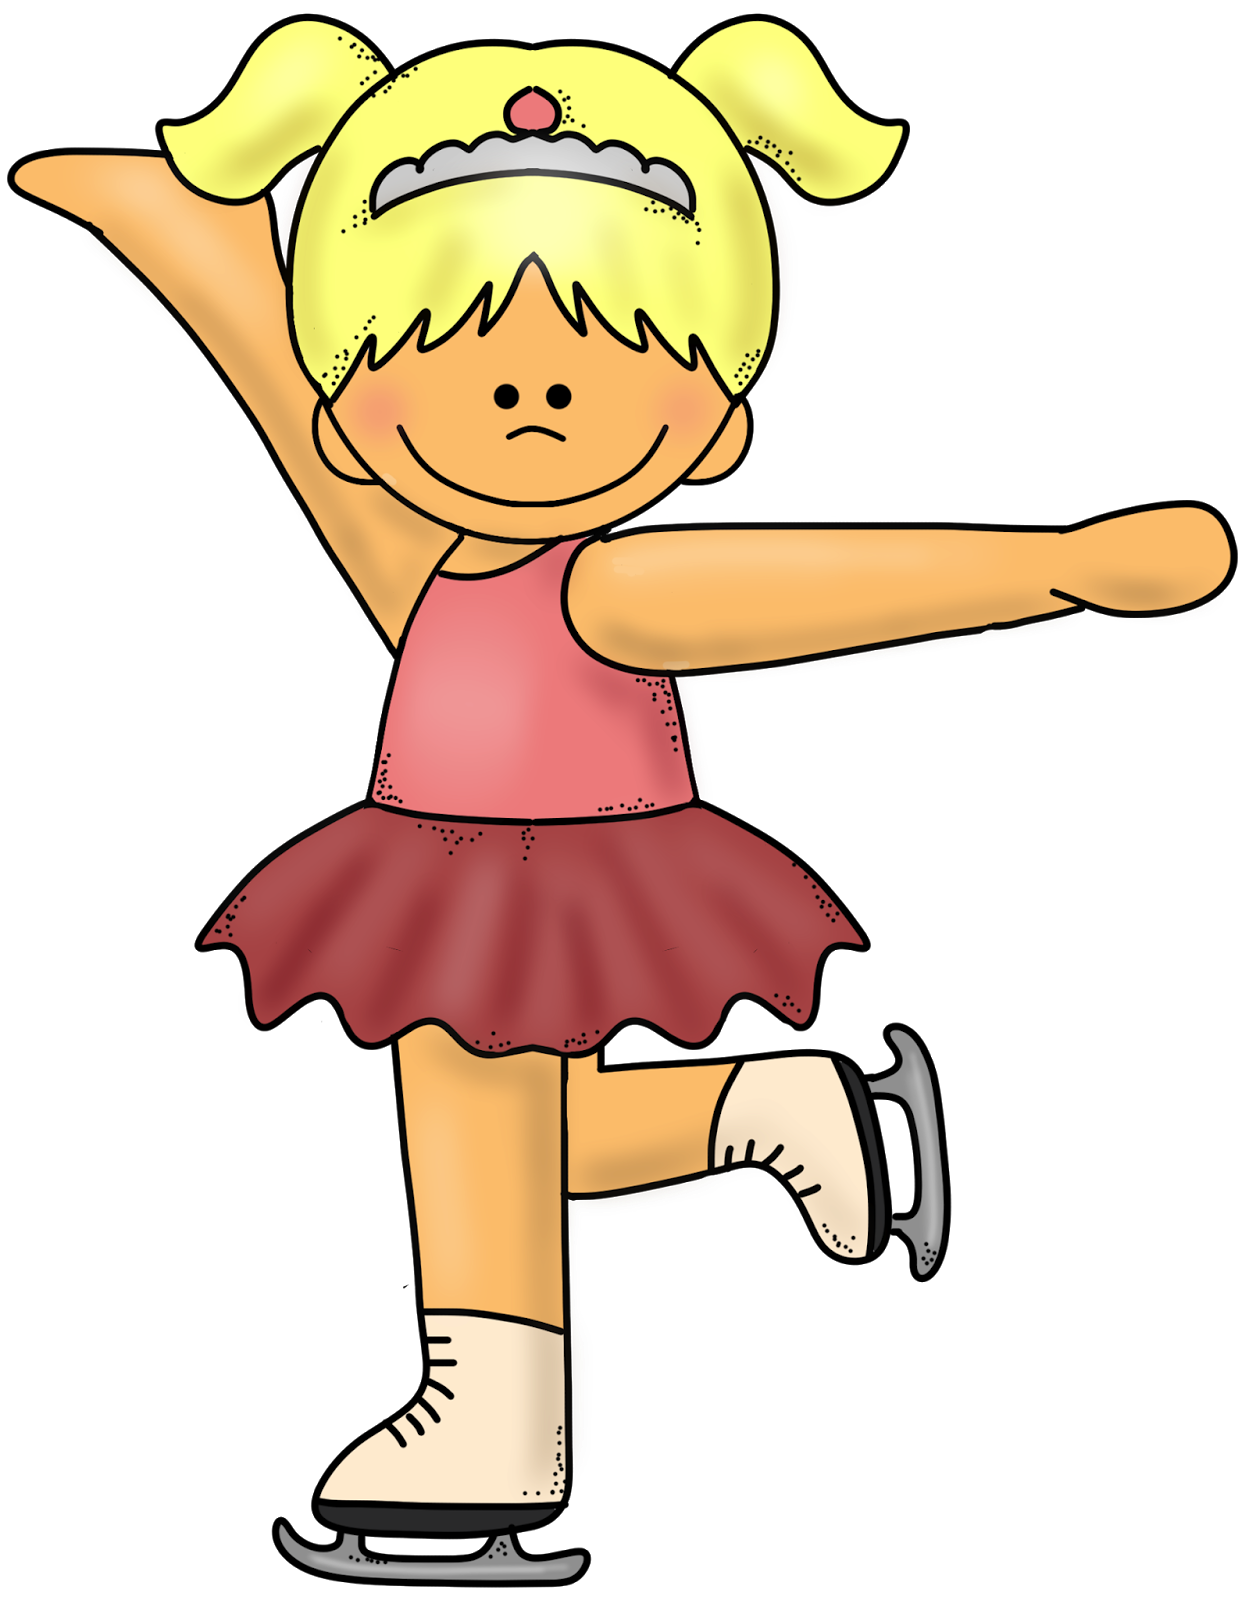 Olympic games skates figure. Clipart winter ice skating